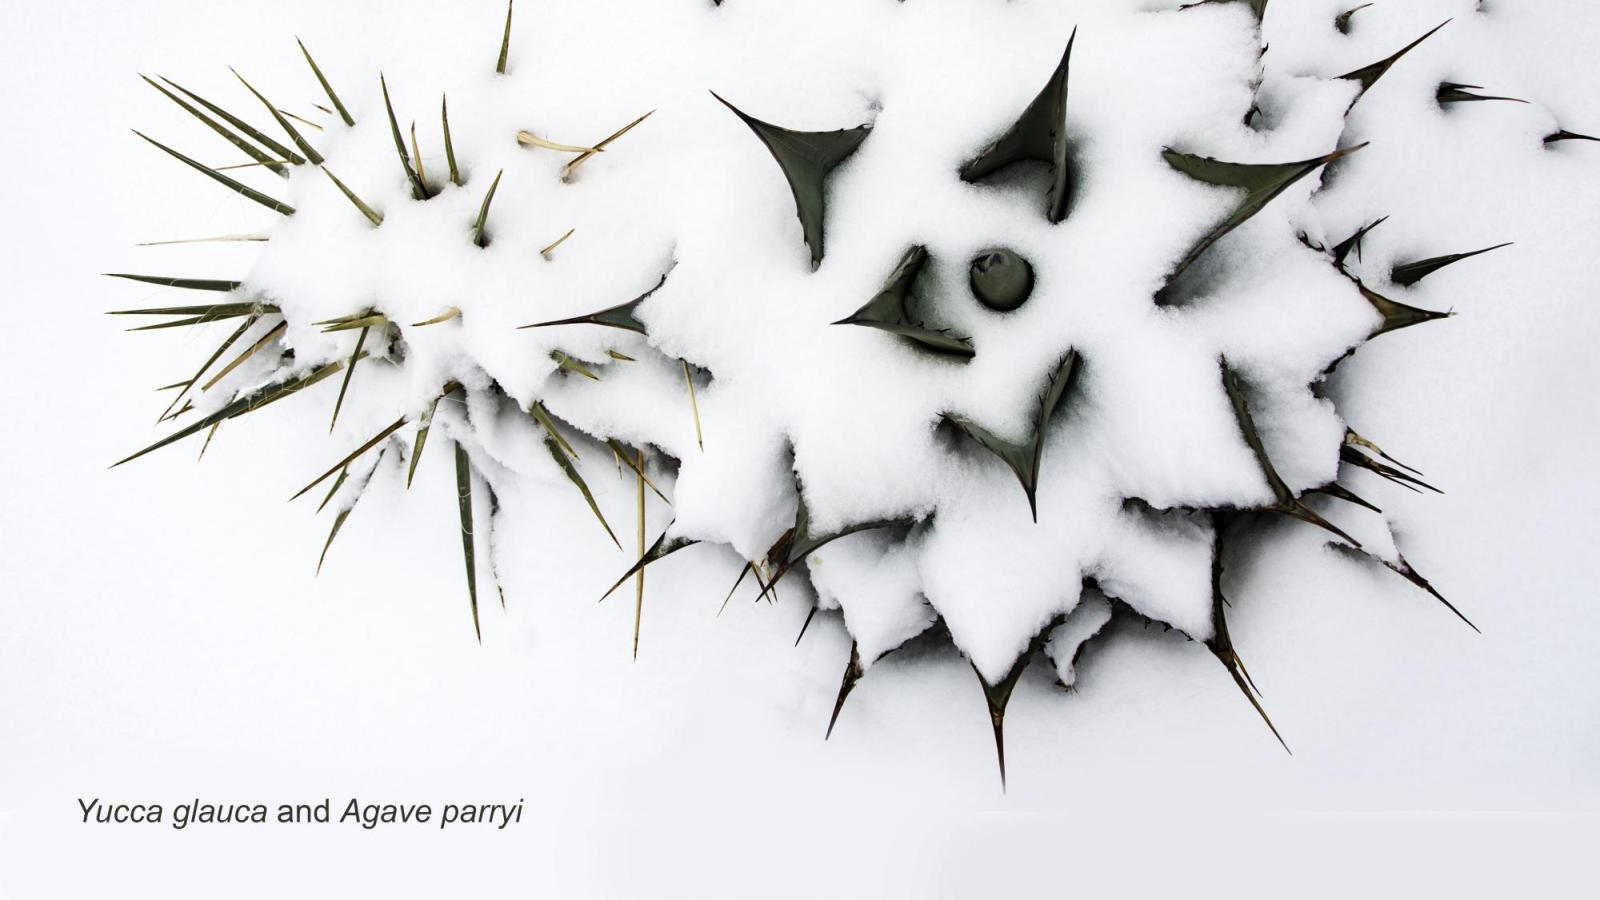 Agave in snow